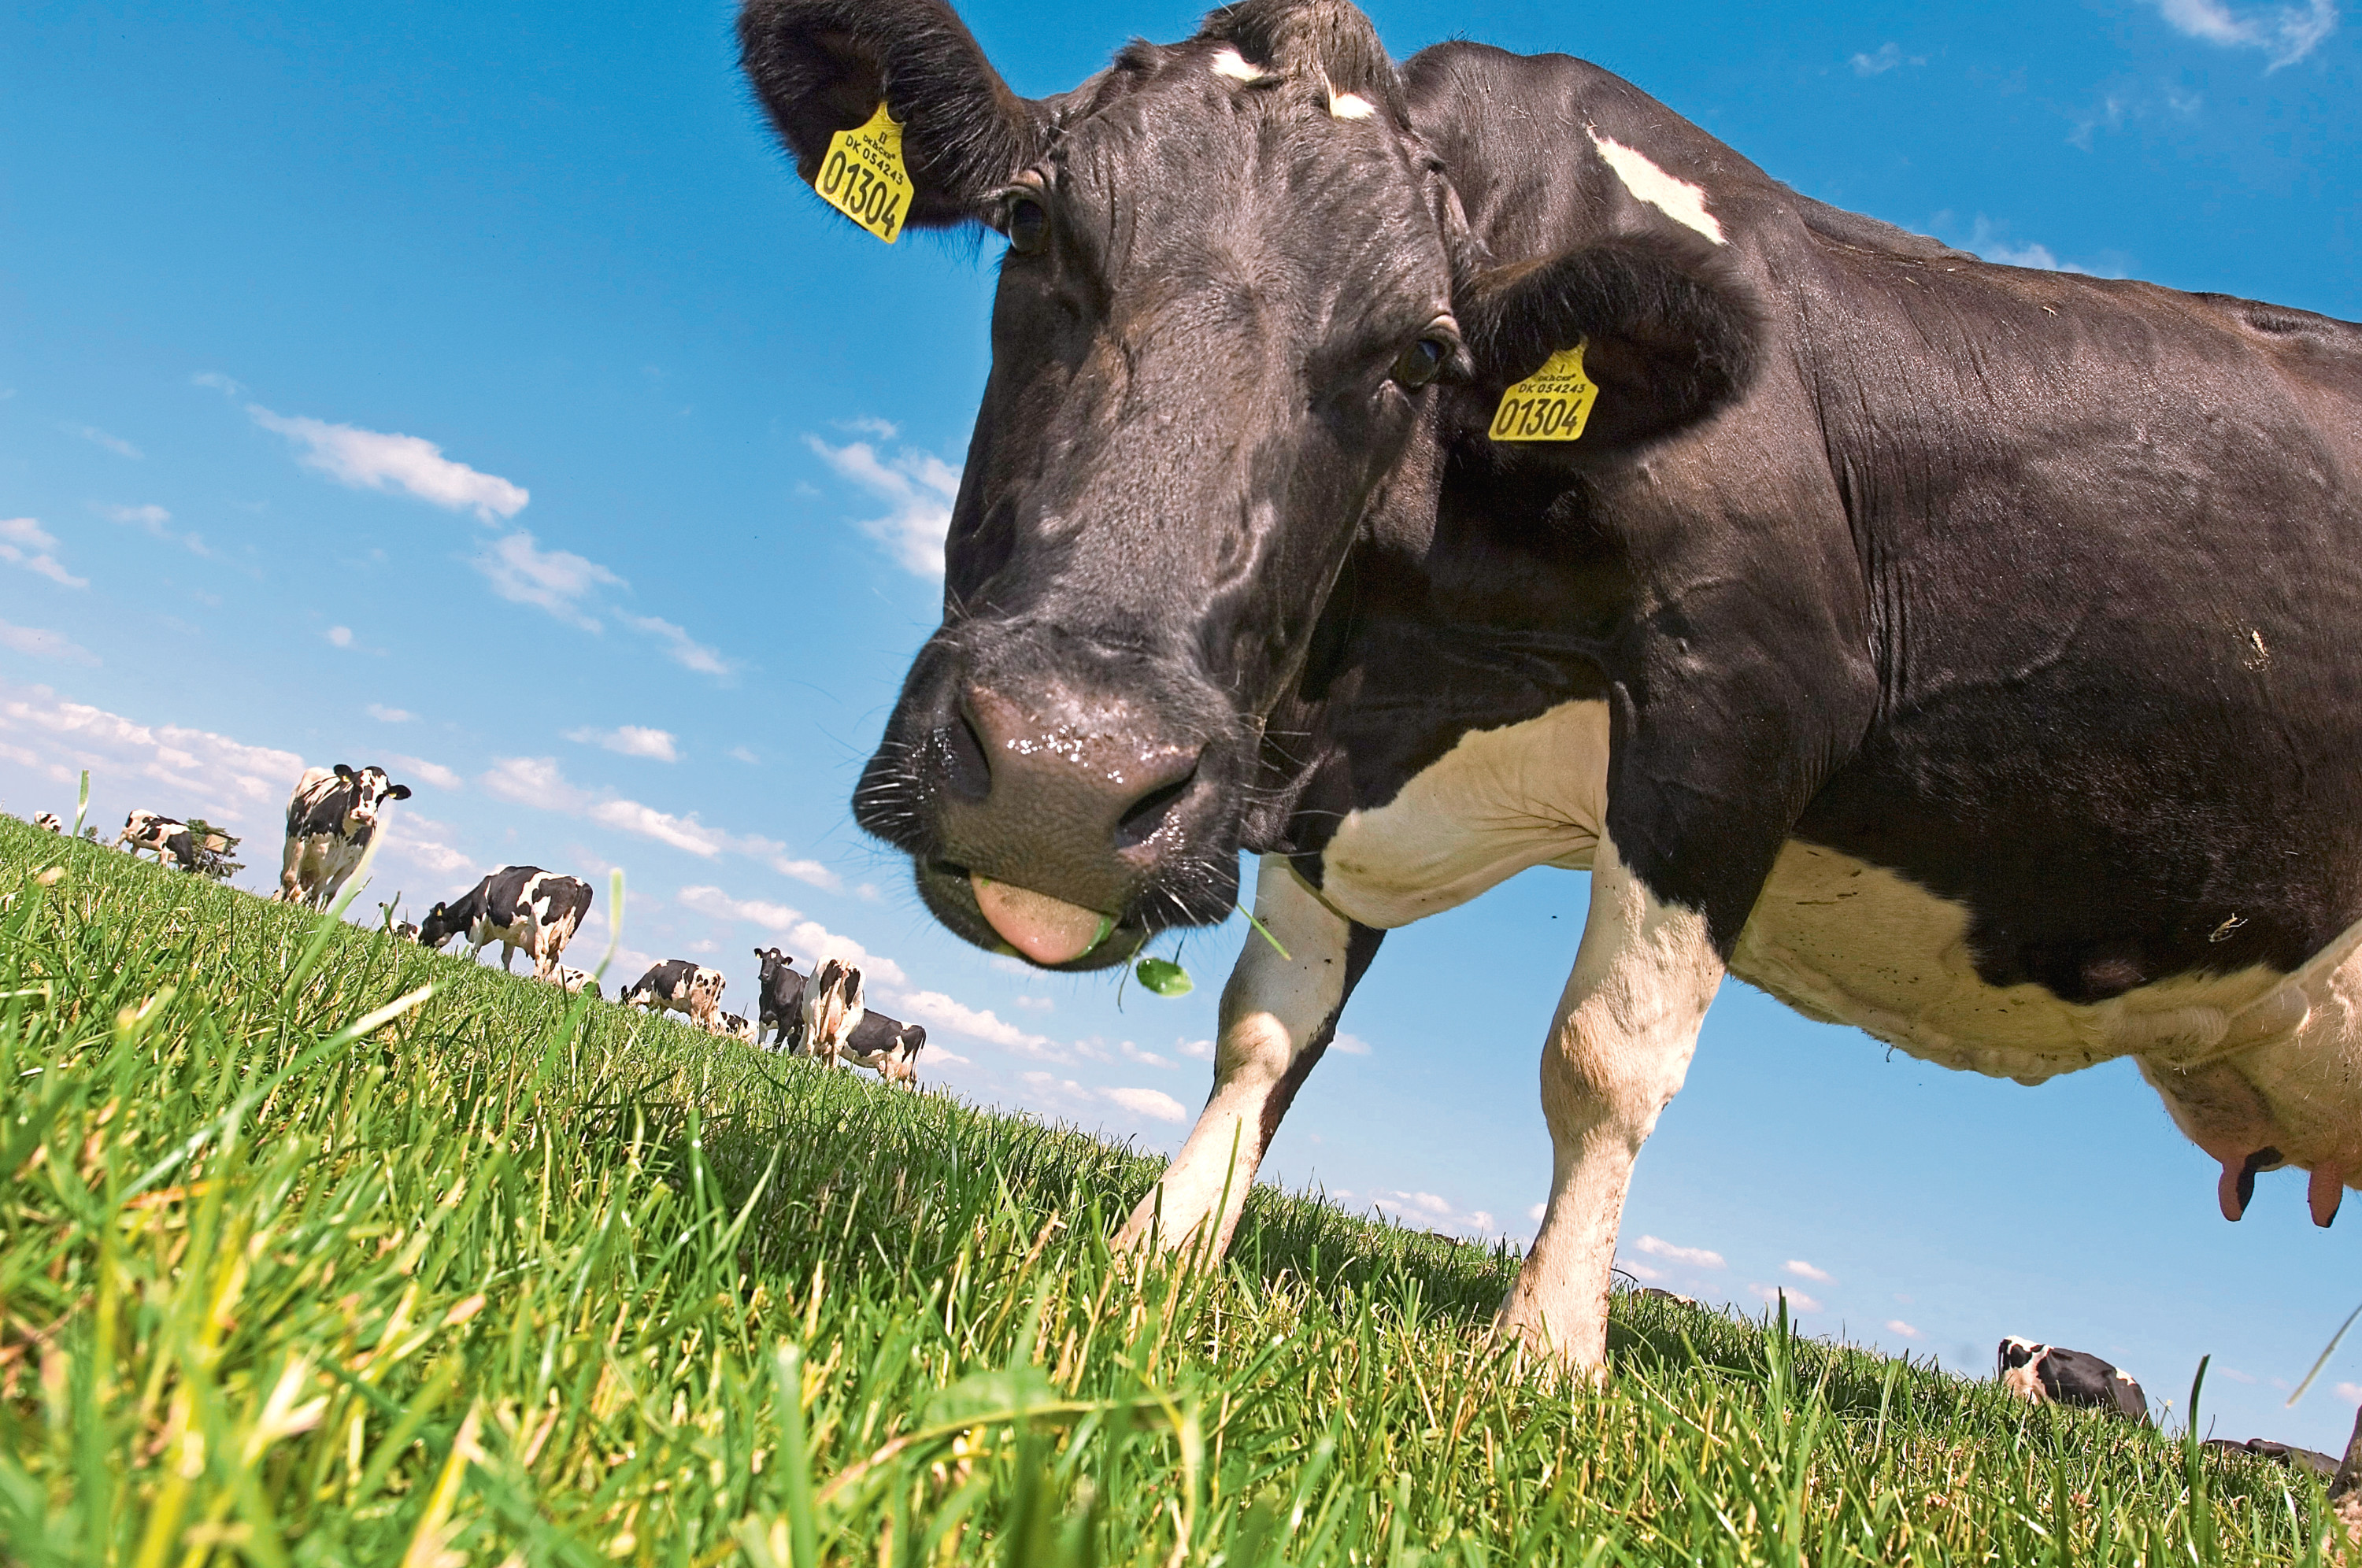 Arla buys milk from around one in four UK dairy farmers.